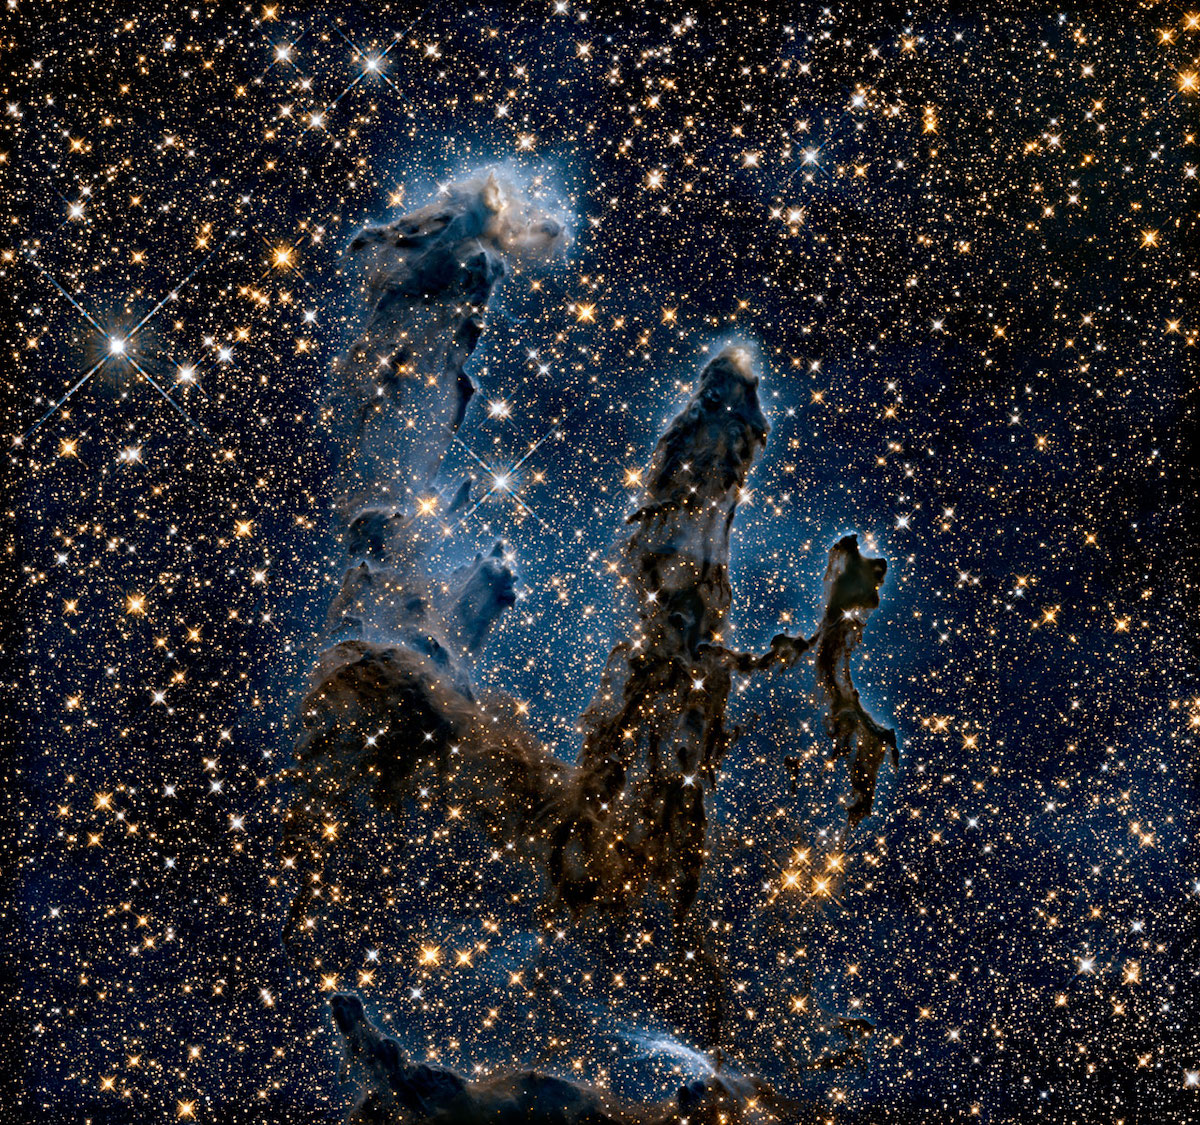 The Pillars of Creation Photographed with Near-Infrared Light